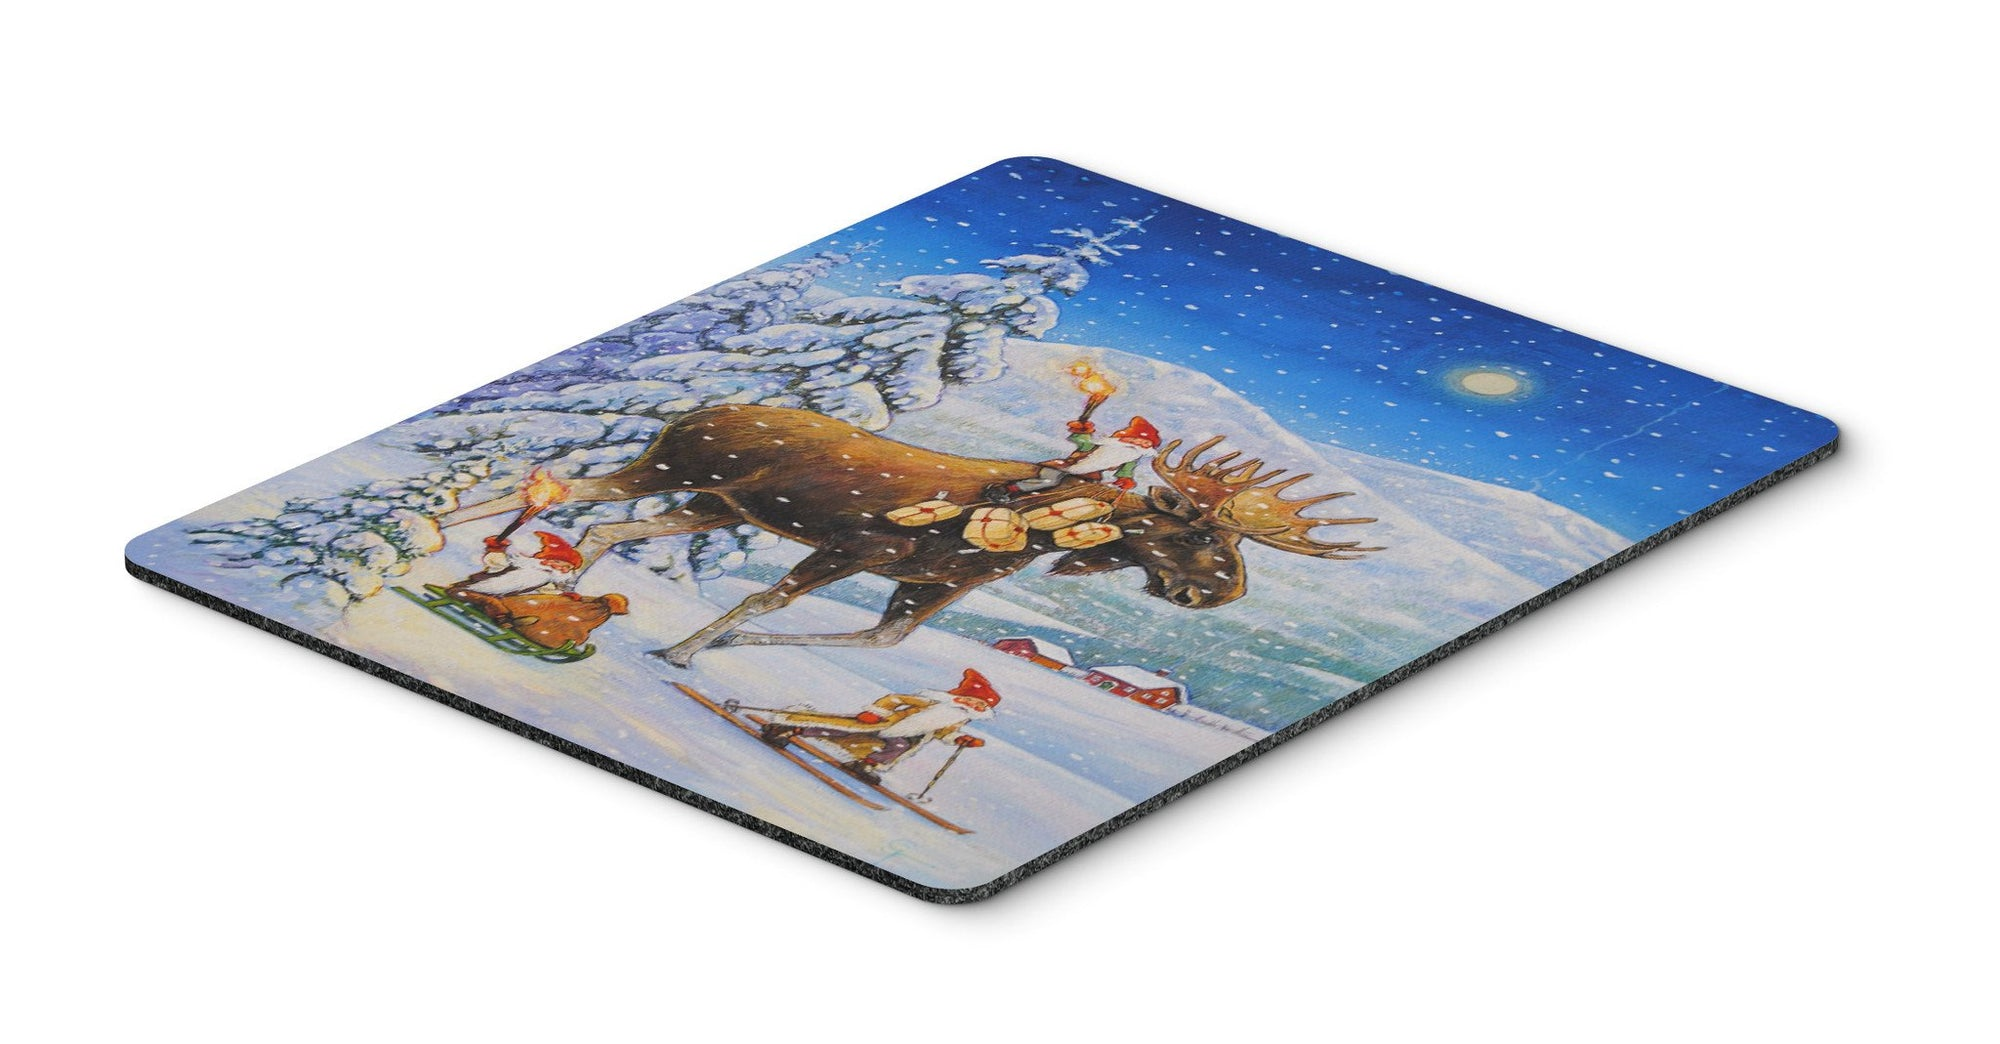 Christmas Gnome riding Reindeer Mouse Pad, Hot Pad or Trivet ACG0102MP by Caroline's Treasures